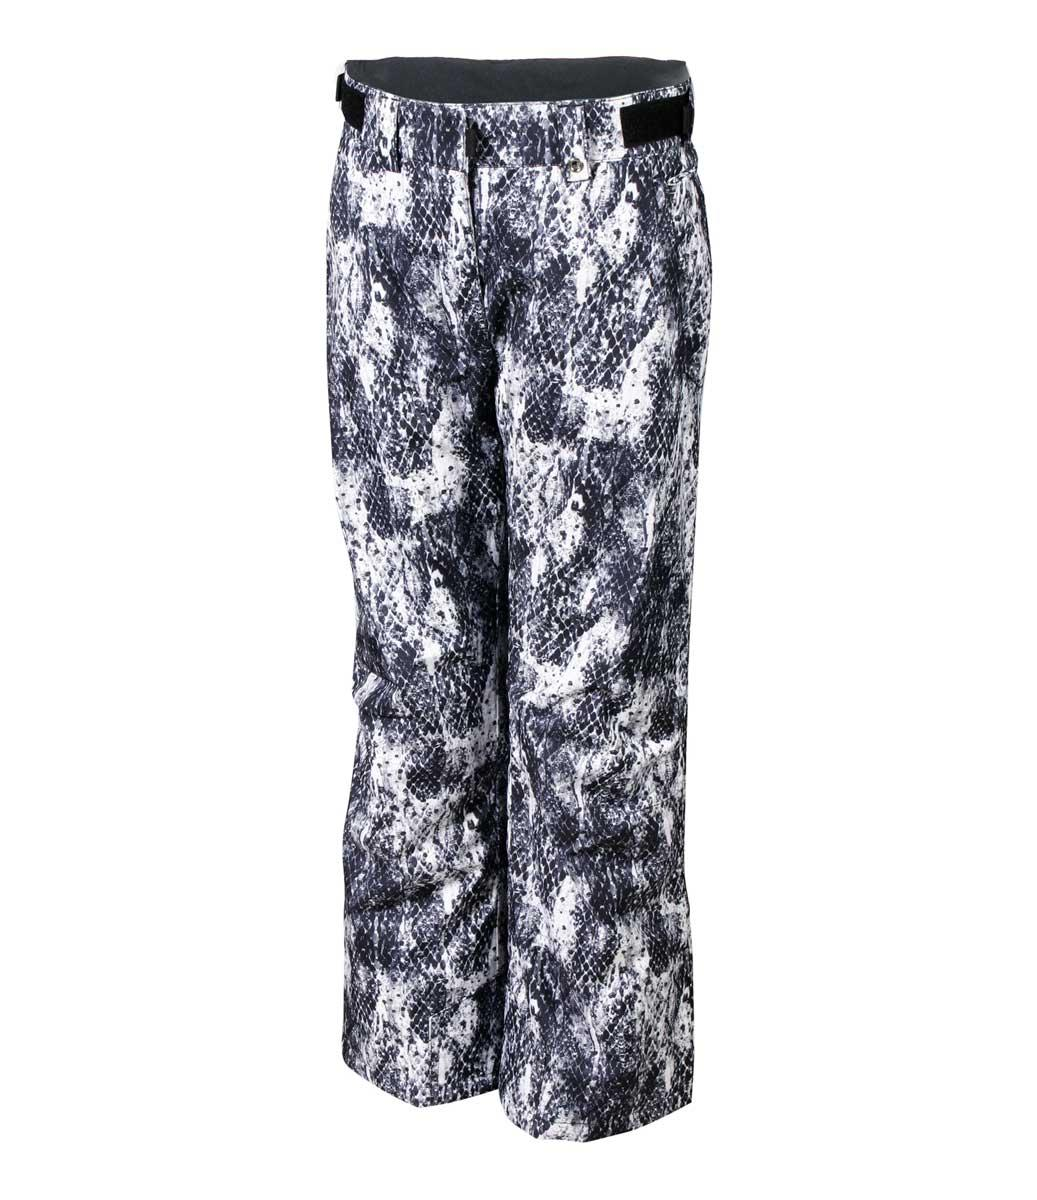 Karbon Girls' Halo Print Pant in Black and White